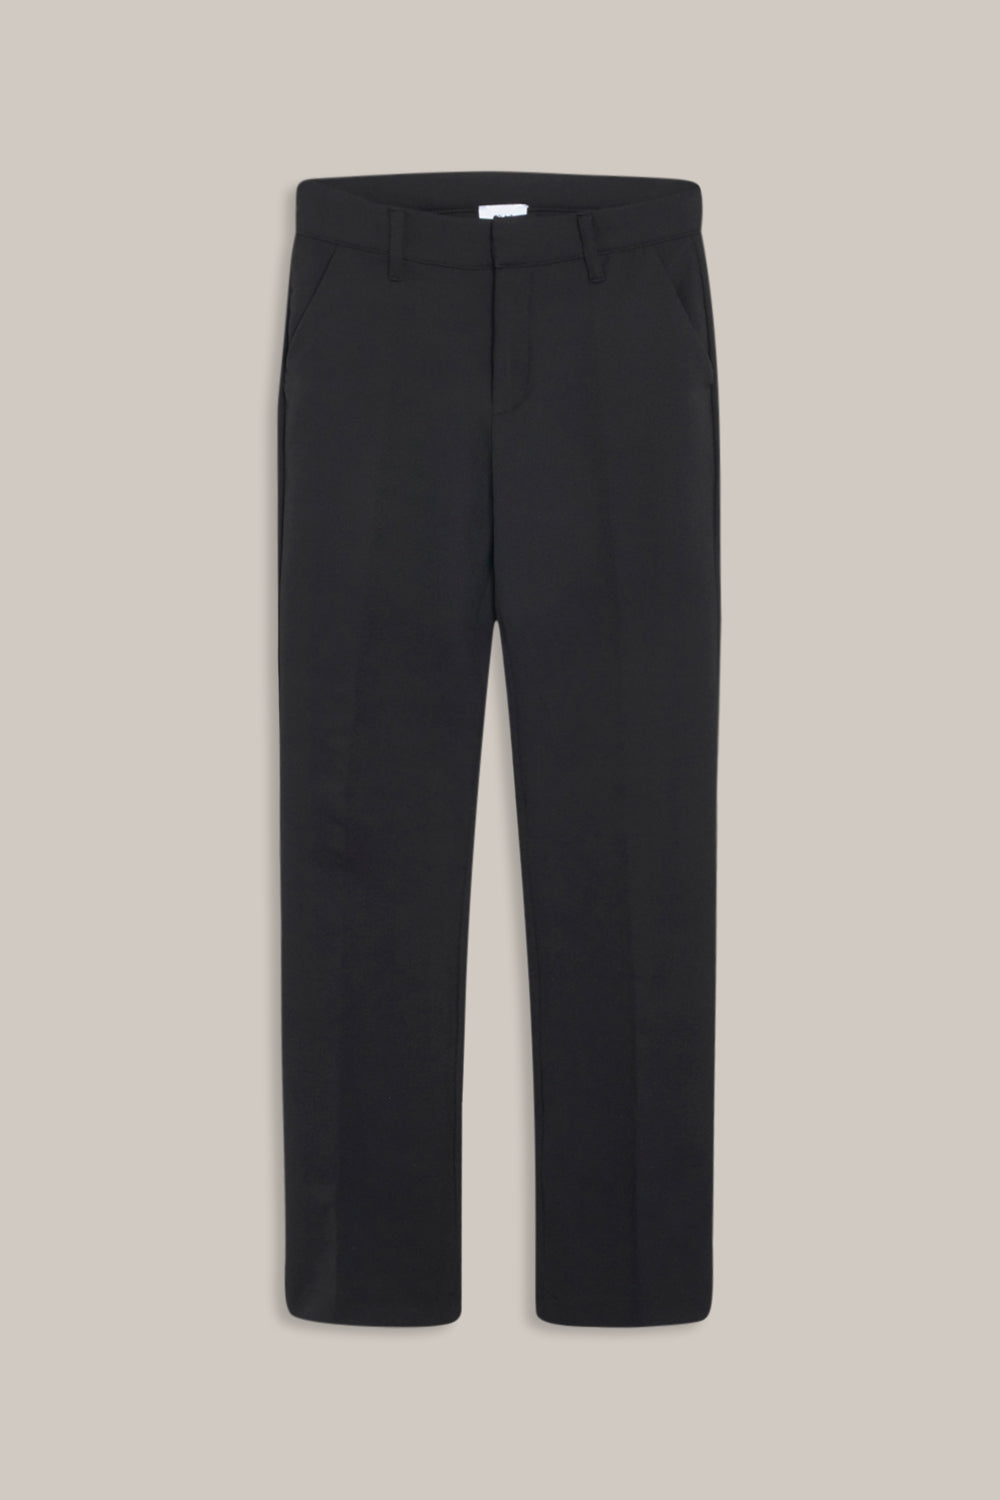 GRUNT Dudu Pant Pants Black